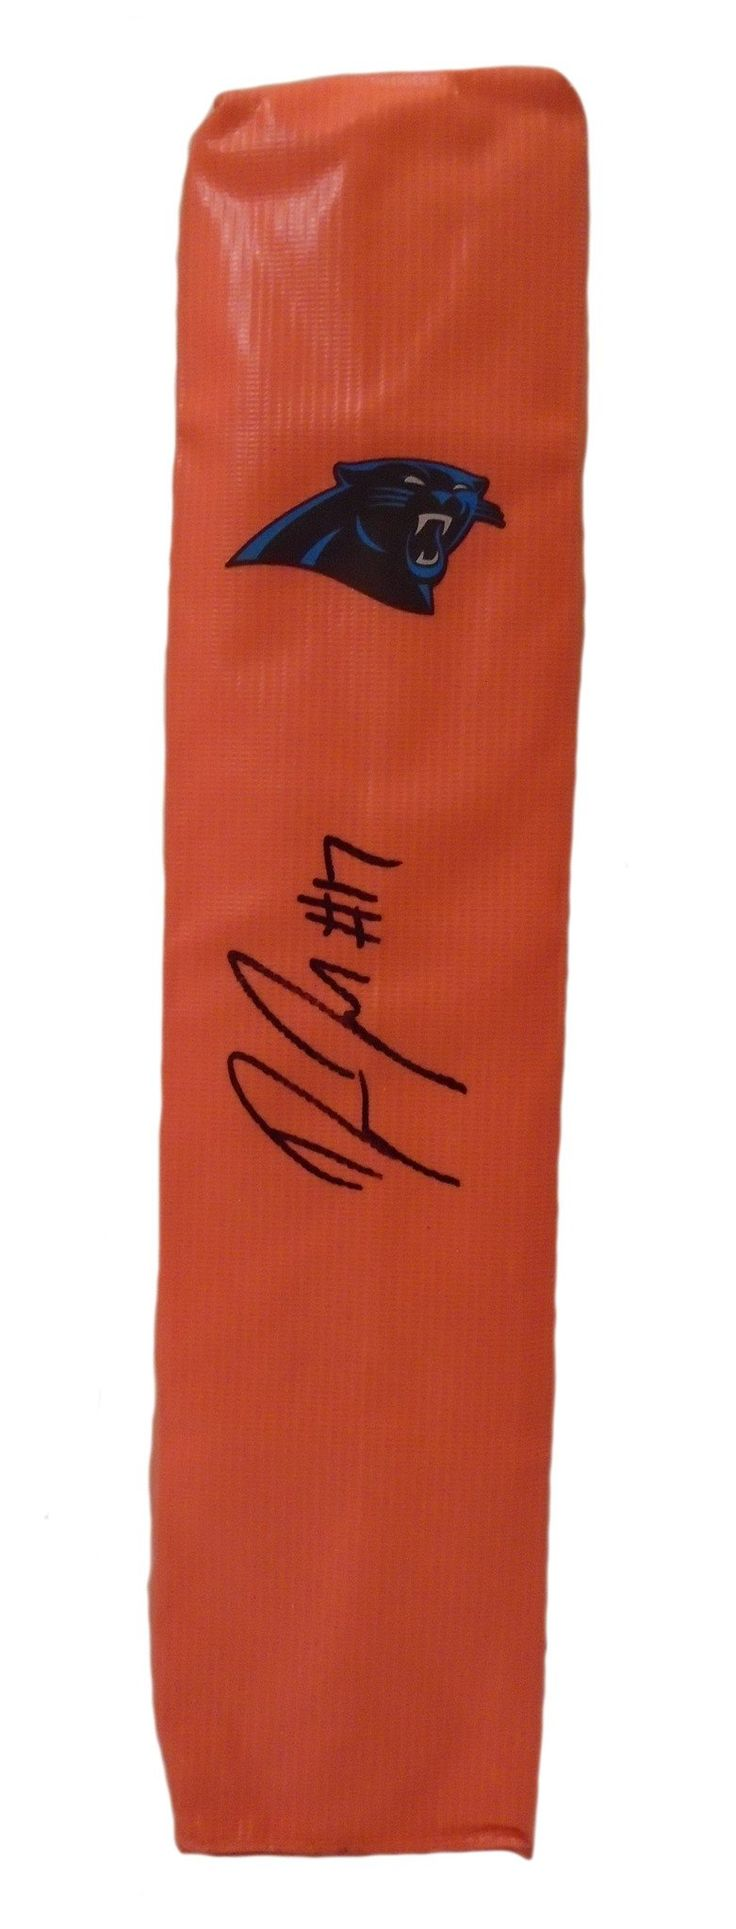 Devin Funchess Autographed Carolina Panthers Full Size Football End Zone Touchdown Pylon. This is a brand-new custom Devin Funchess signed Carolina Panthersfull sizefootball end zone pylon. This pylon measures 4inches (Width) X 4inches (Length) X 18inches (Height). Devin signed the pylonin black sharpie.Check out the photo of Devin signing for us. ** Proof photo is included for free with purchase. Please click on images to enlarge. Please browse our websitefor additional NFL…